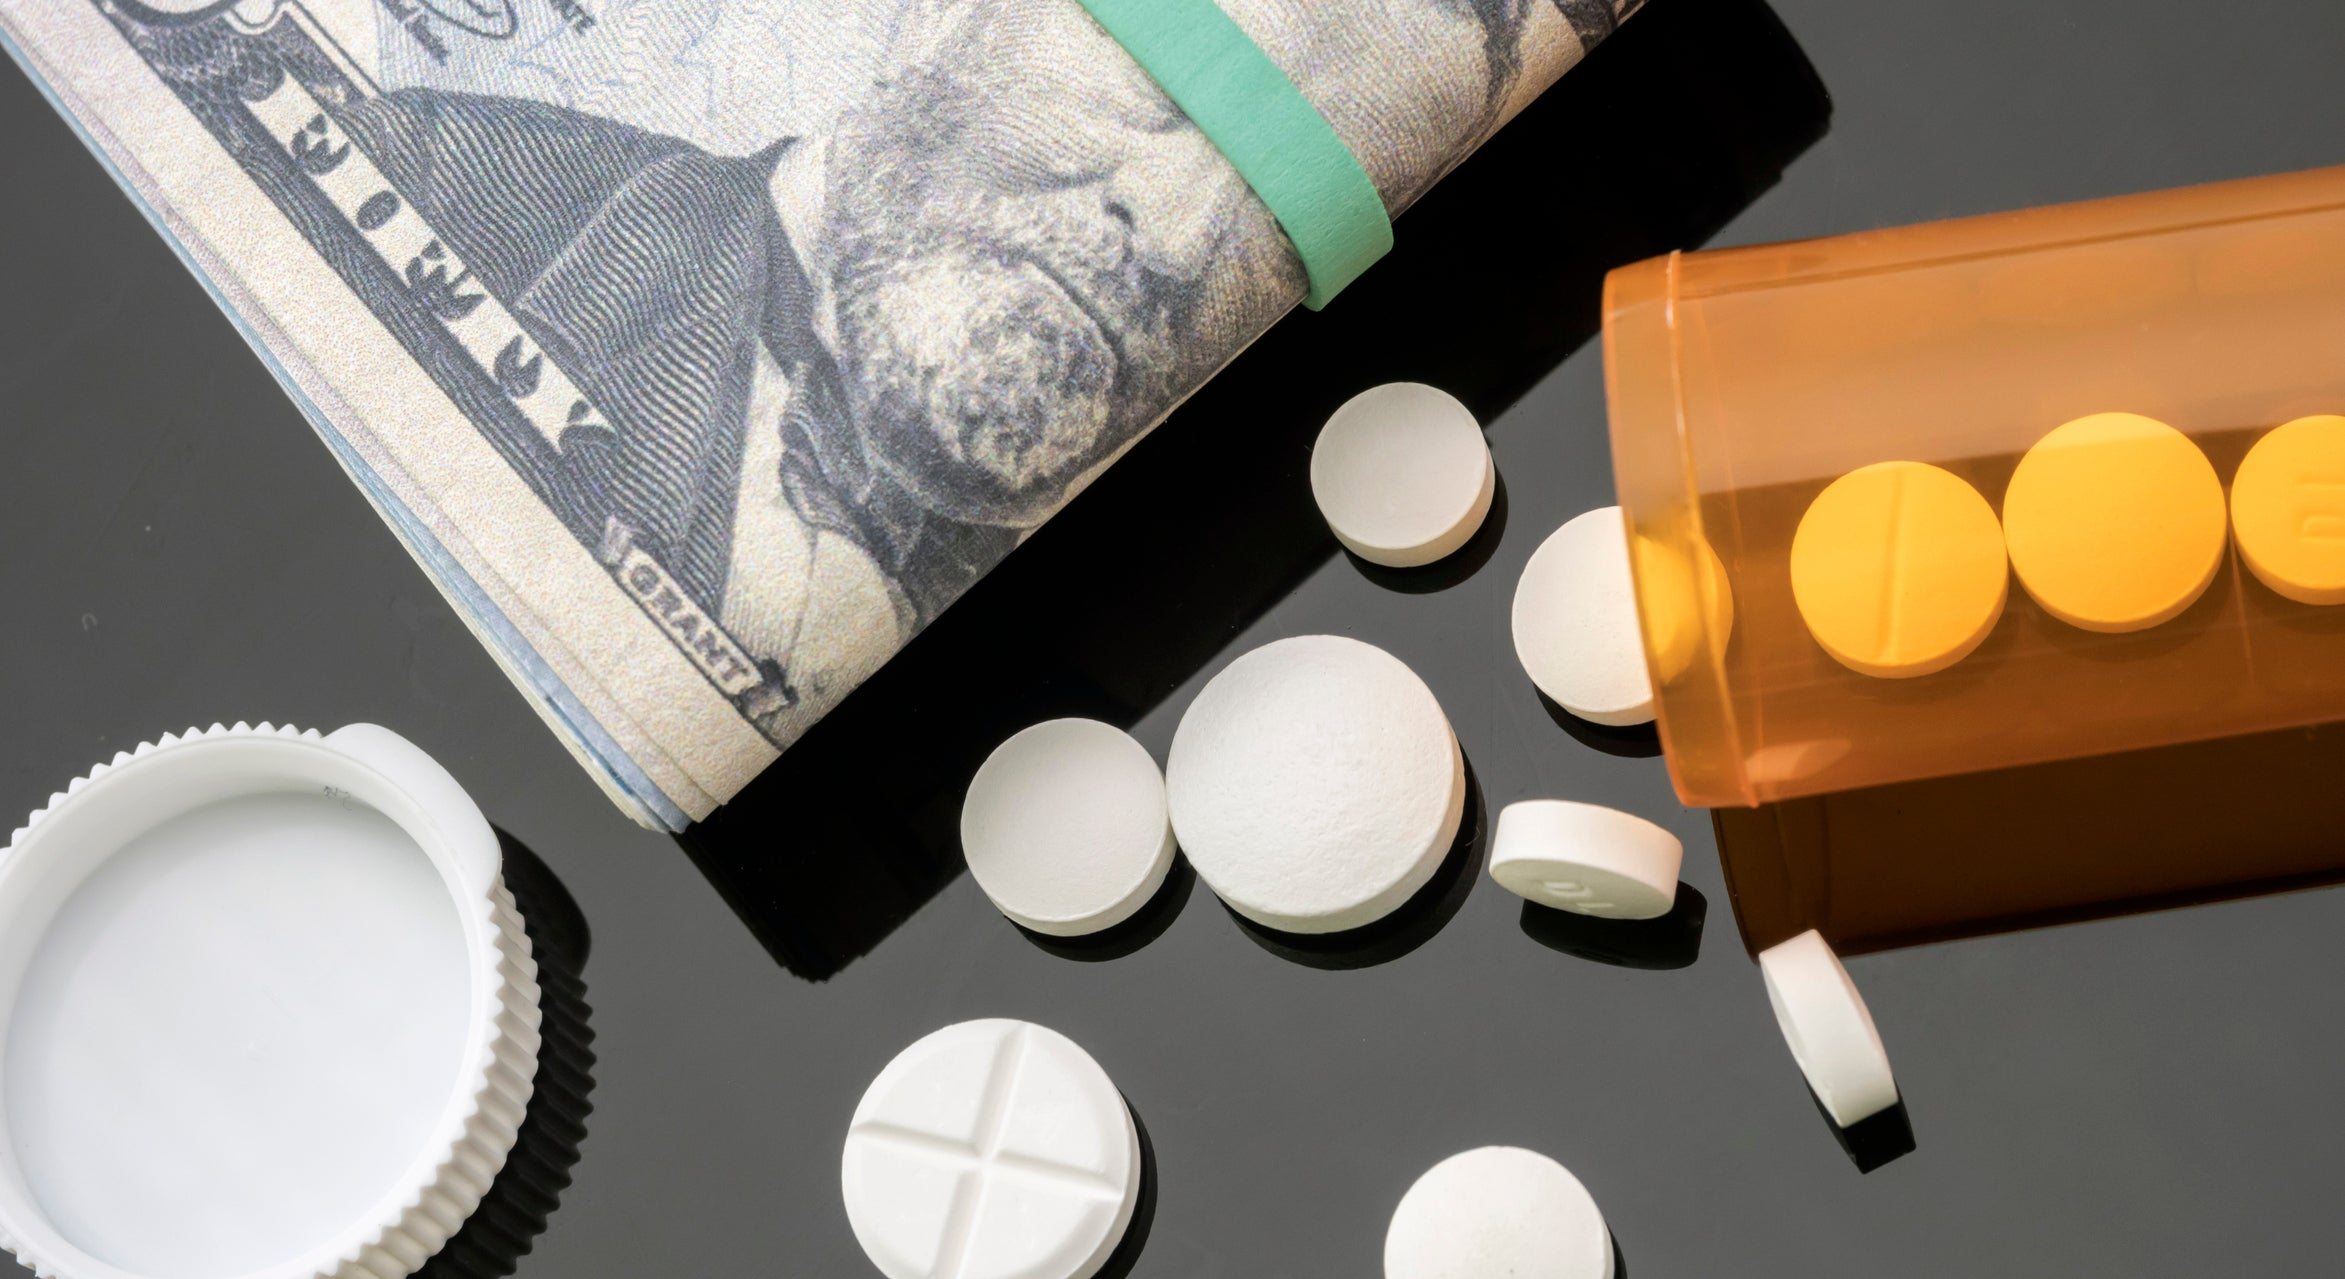 Teva Pharmaceutical Reports a Step Back in 2019 | The Motley Fool